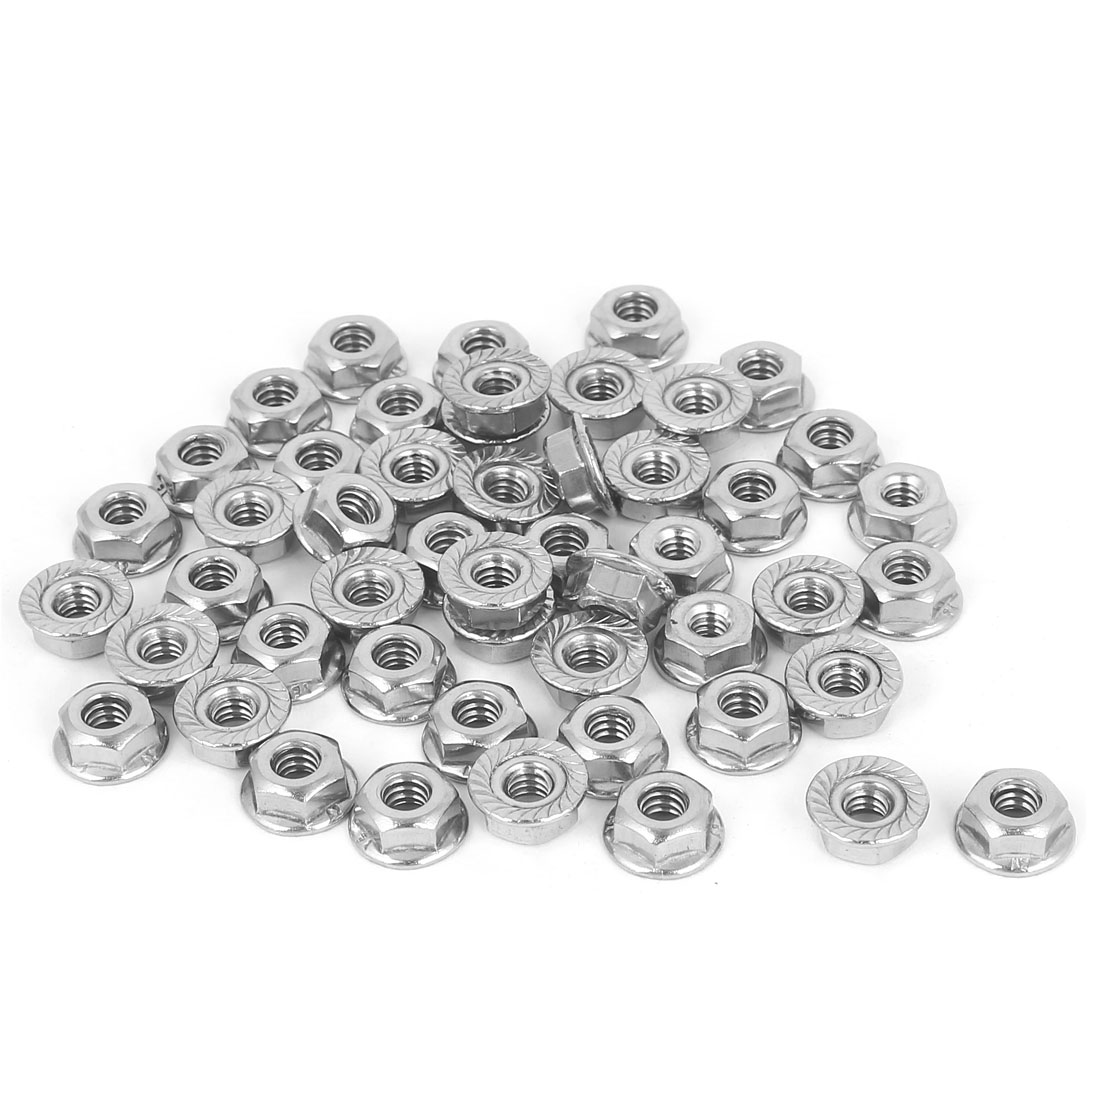 "3/16""-24 304 Stainless Steel Hex Serrated Flange Lock Screw Nuts 50 Pcs"